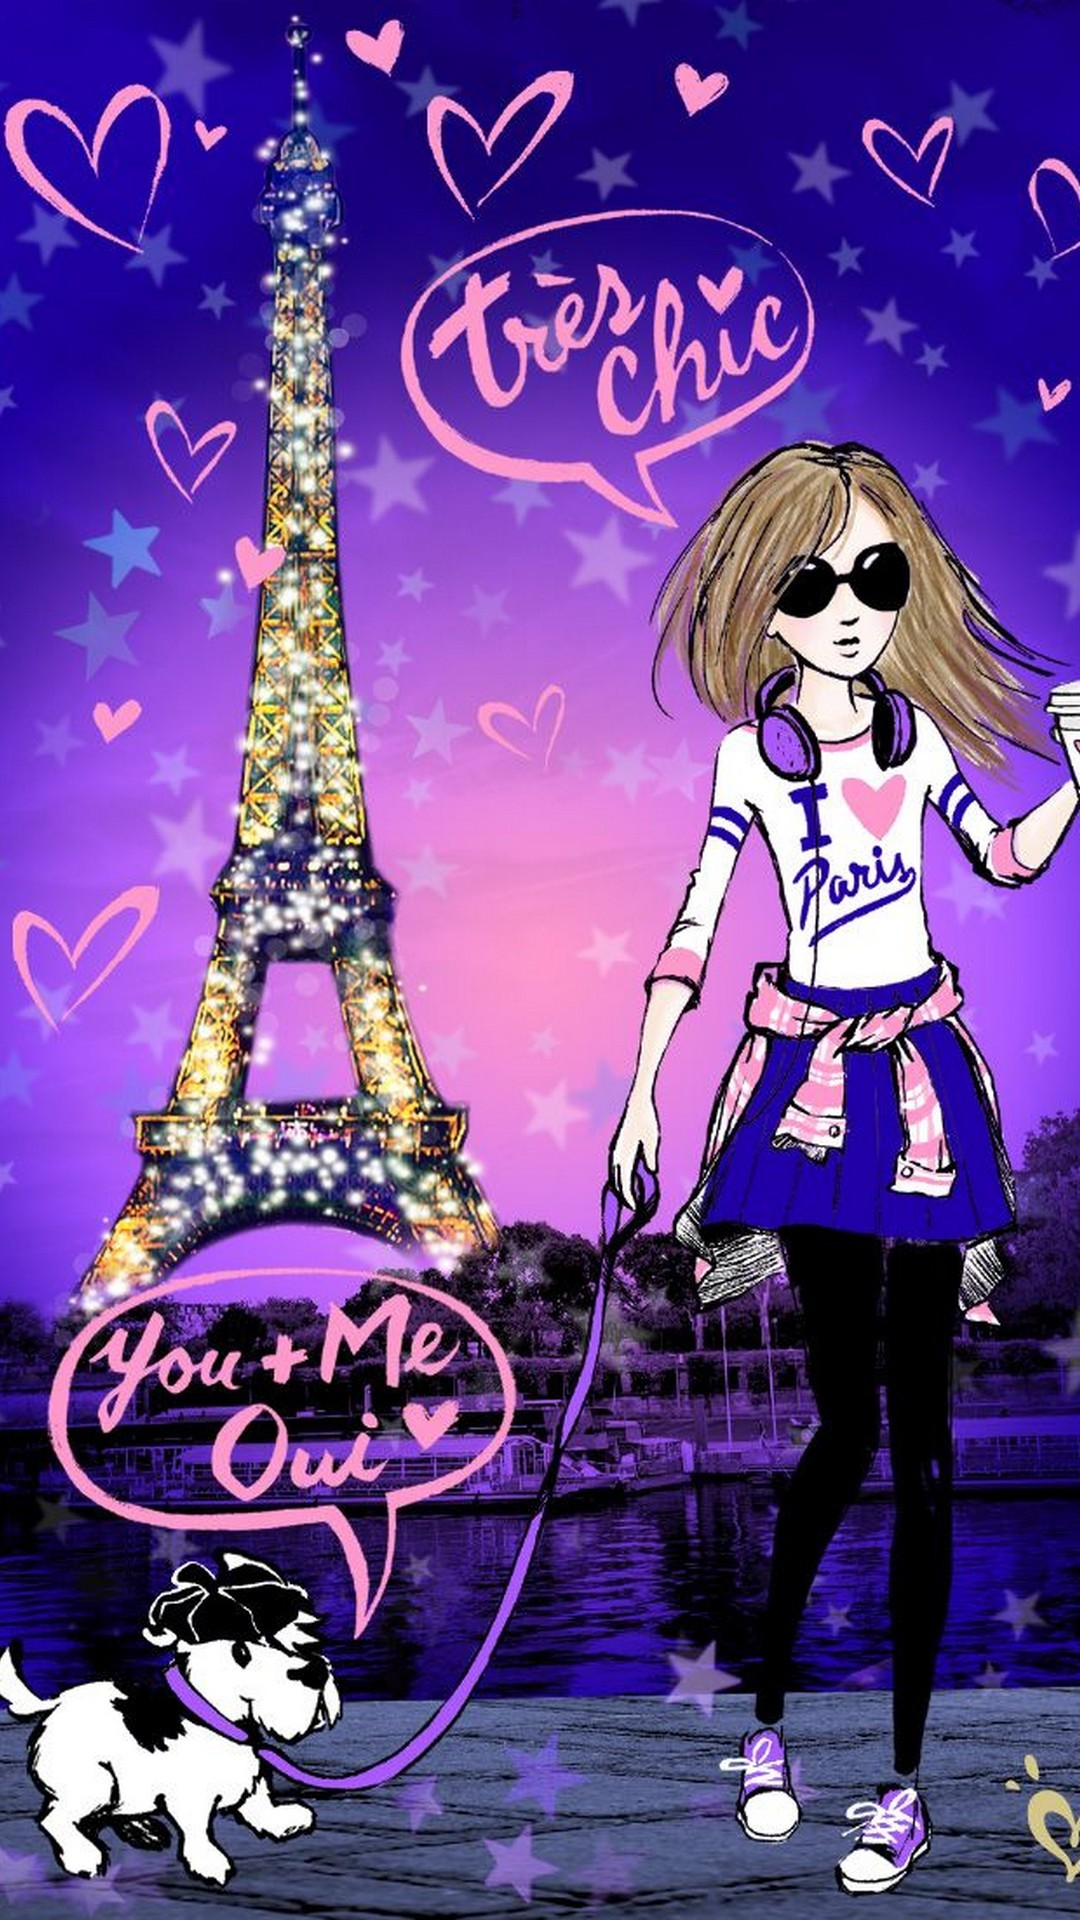 Cute Girly Backgrounds For Android   2020 Android Wallpapers 1080x1920